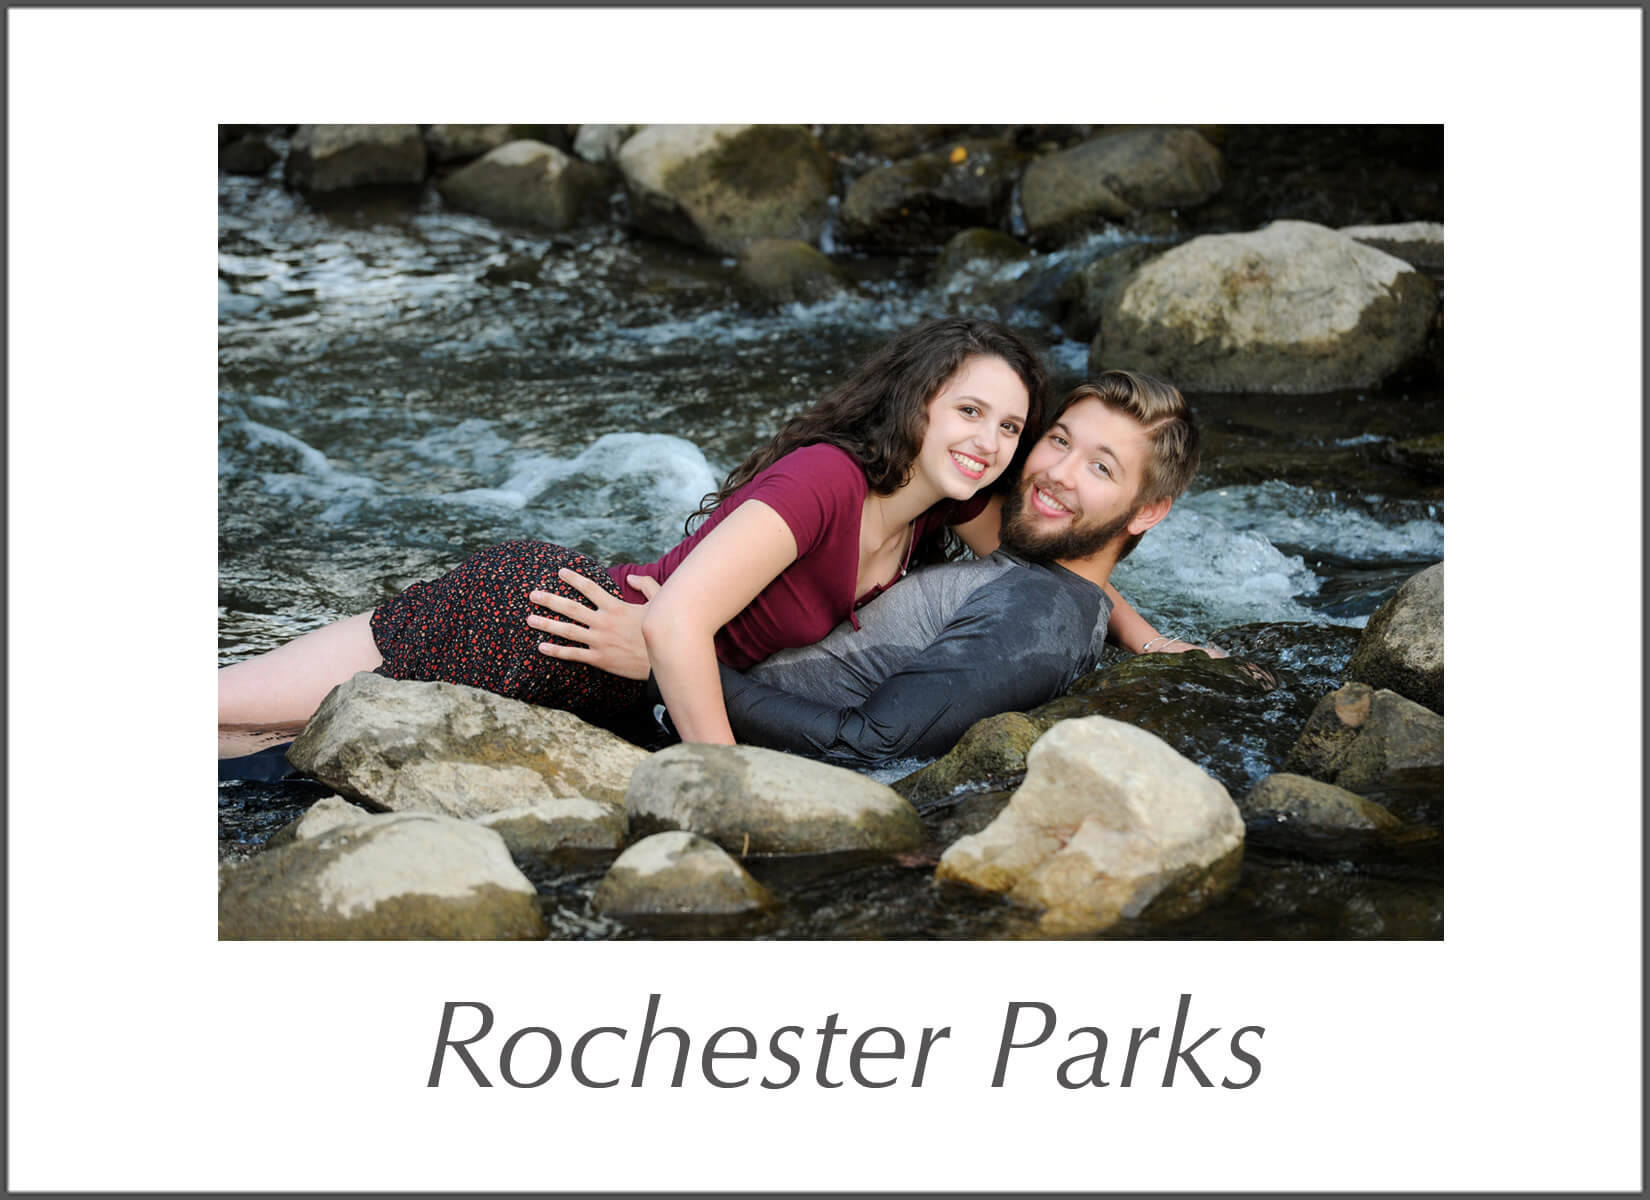 Michigan wedding photojournalist uses park and downtown Rochester in south east Michigan to shoot fun, candid style outdoor portrait sessions